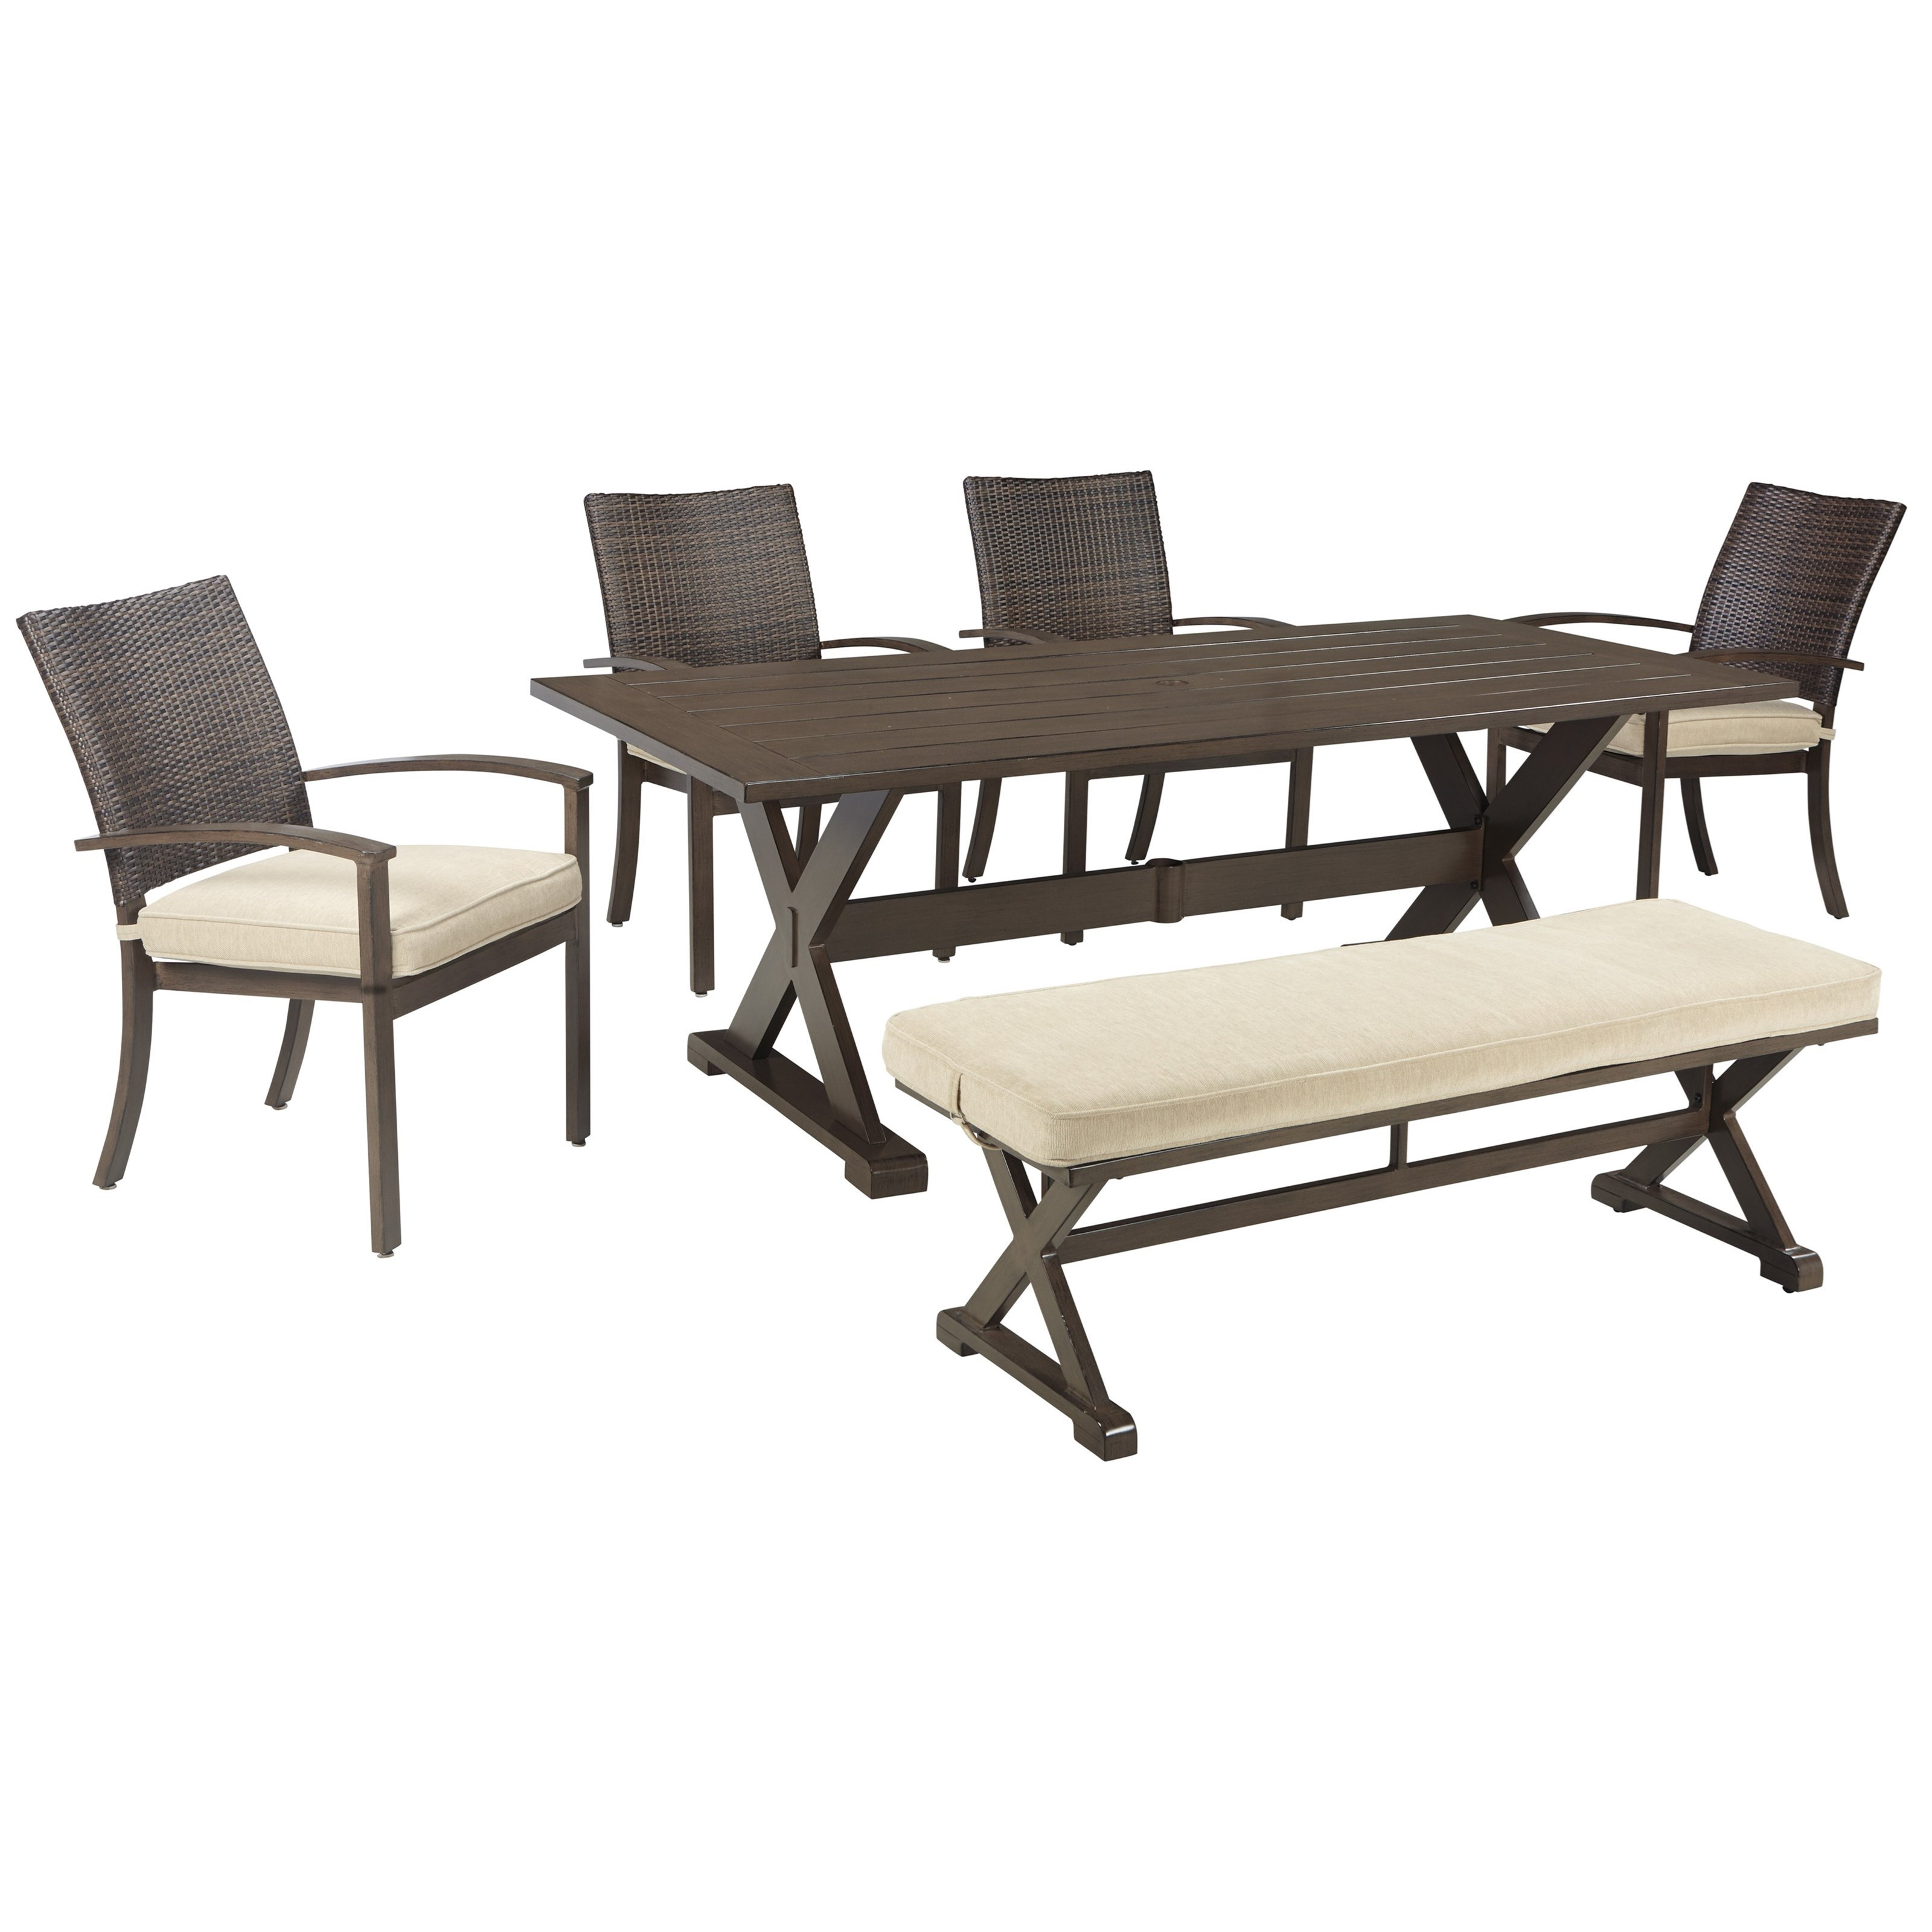 Ashley signature design moresdale outdoor dining set with for Bench style dining set